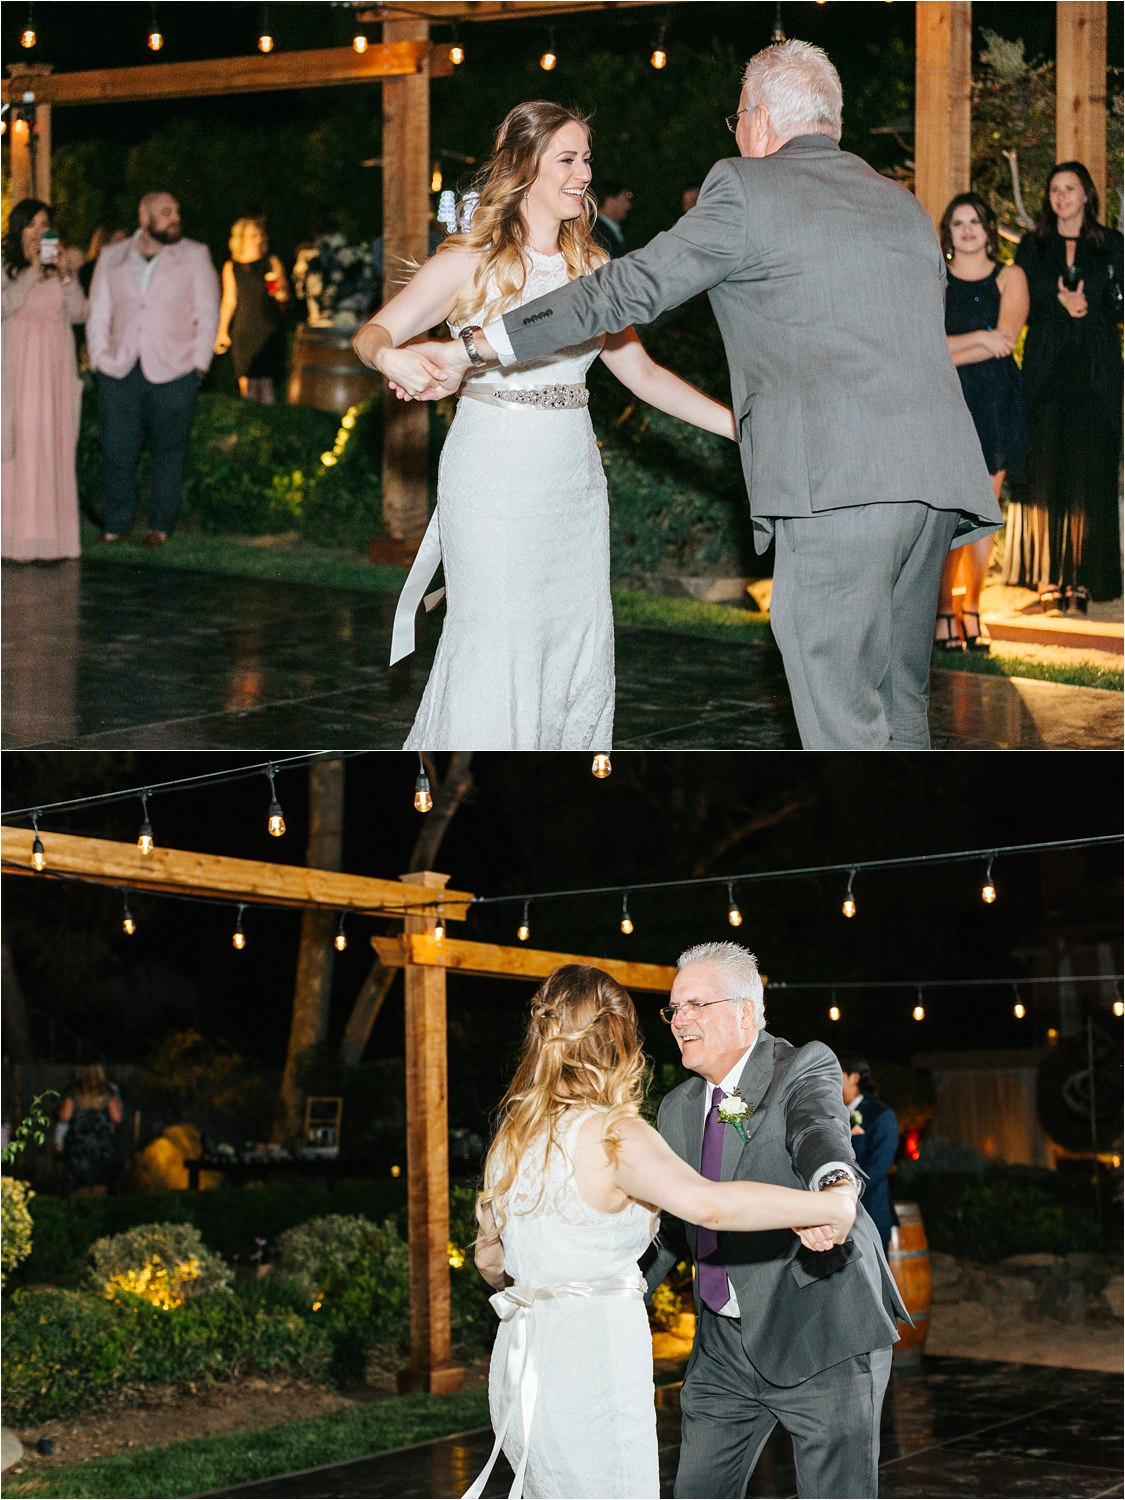 Bride dances with her dad - https://brittneyhannonphotography.com